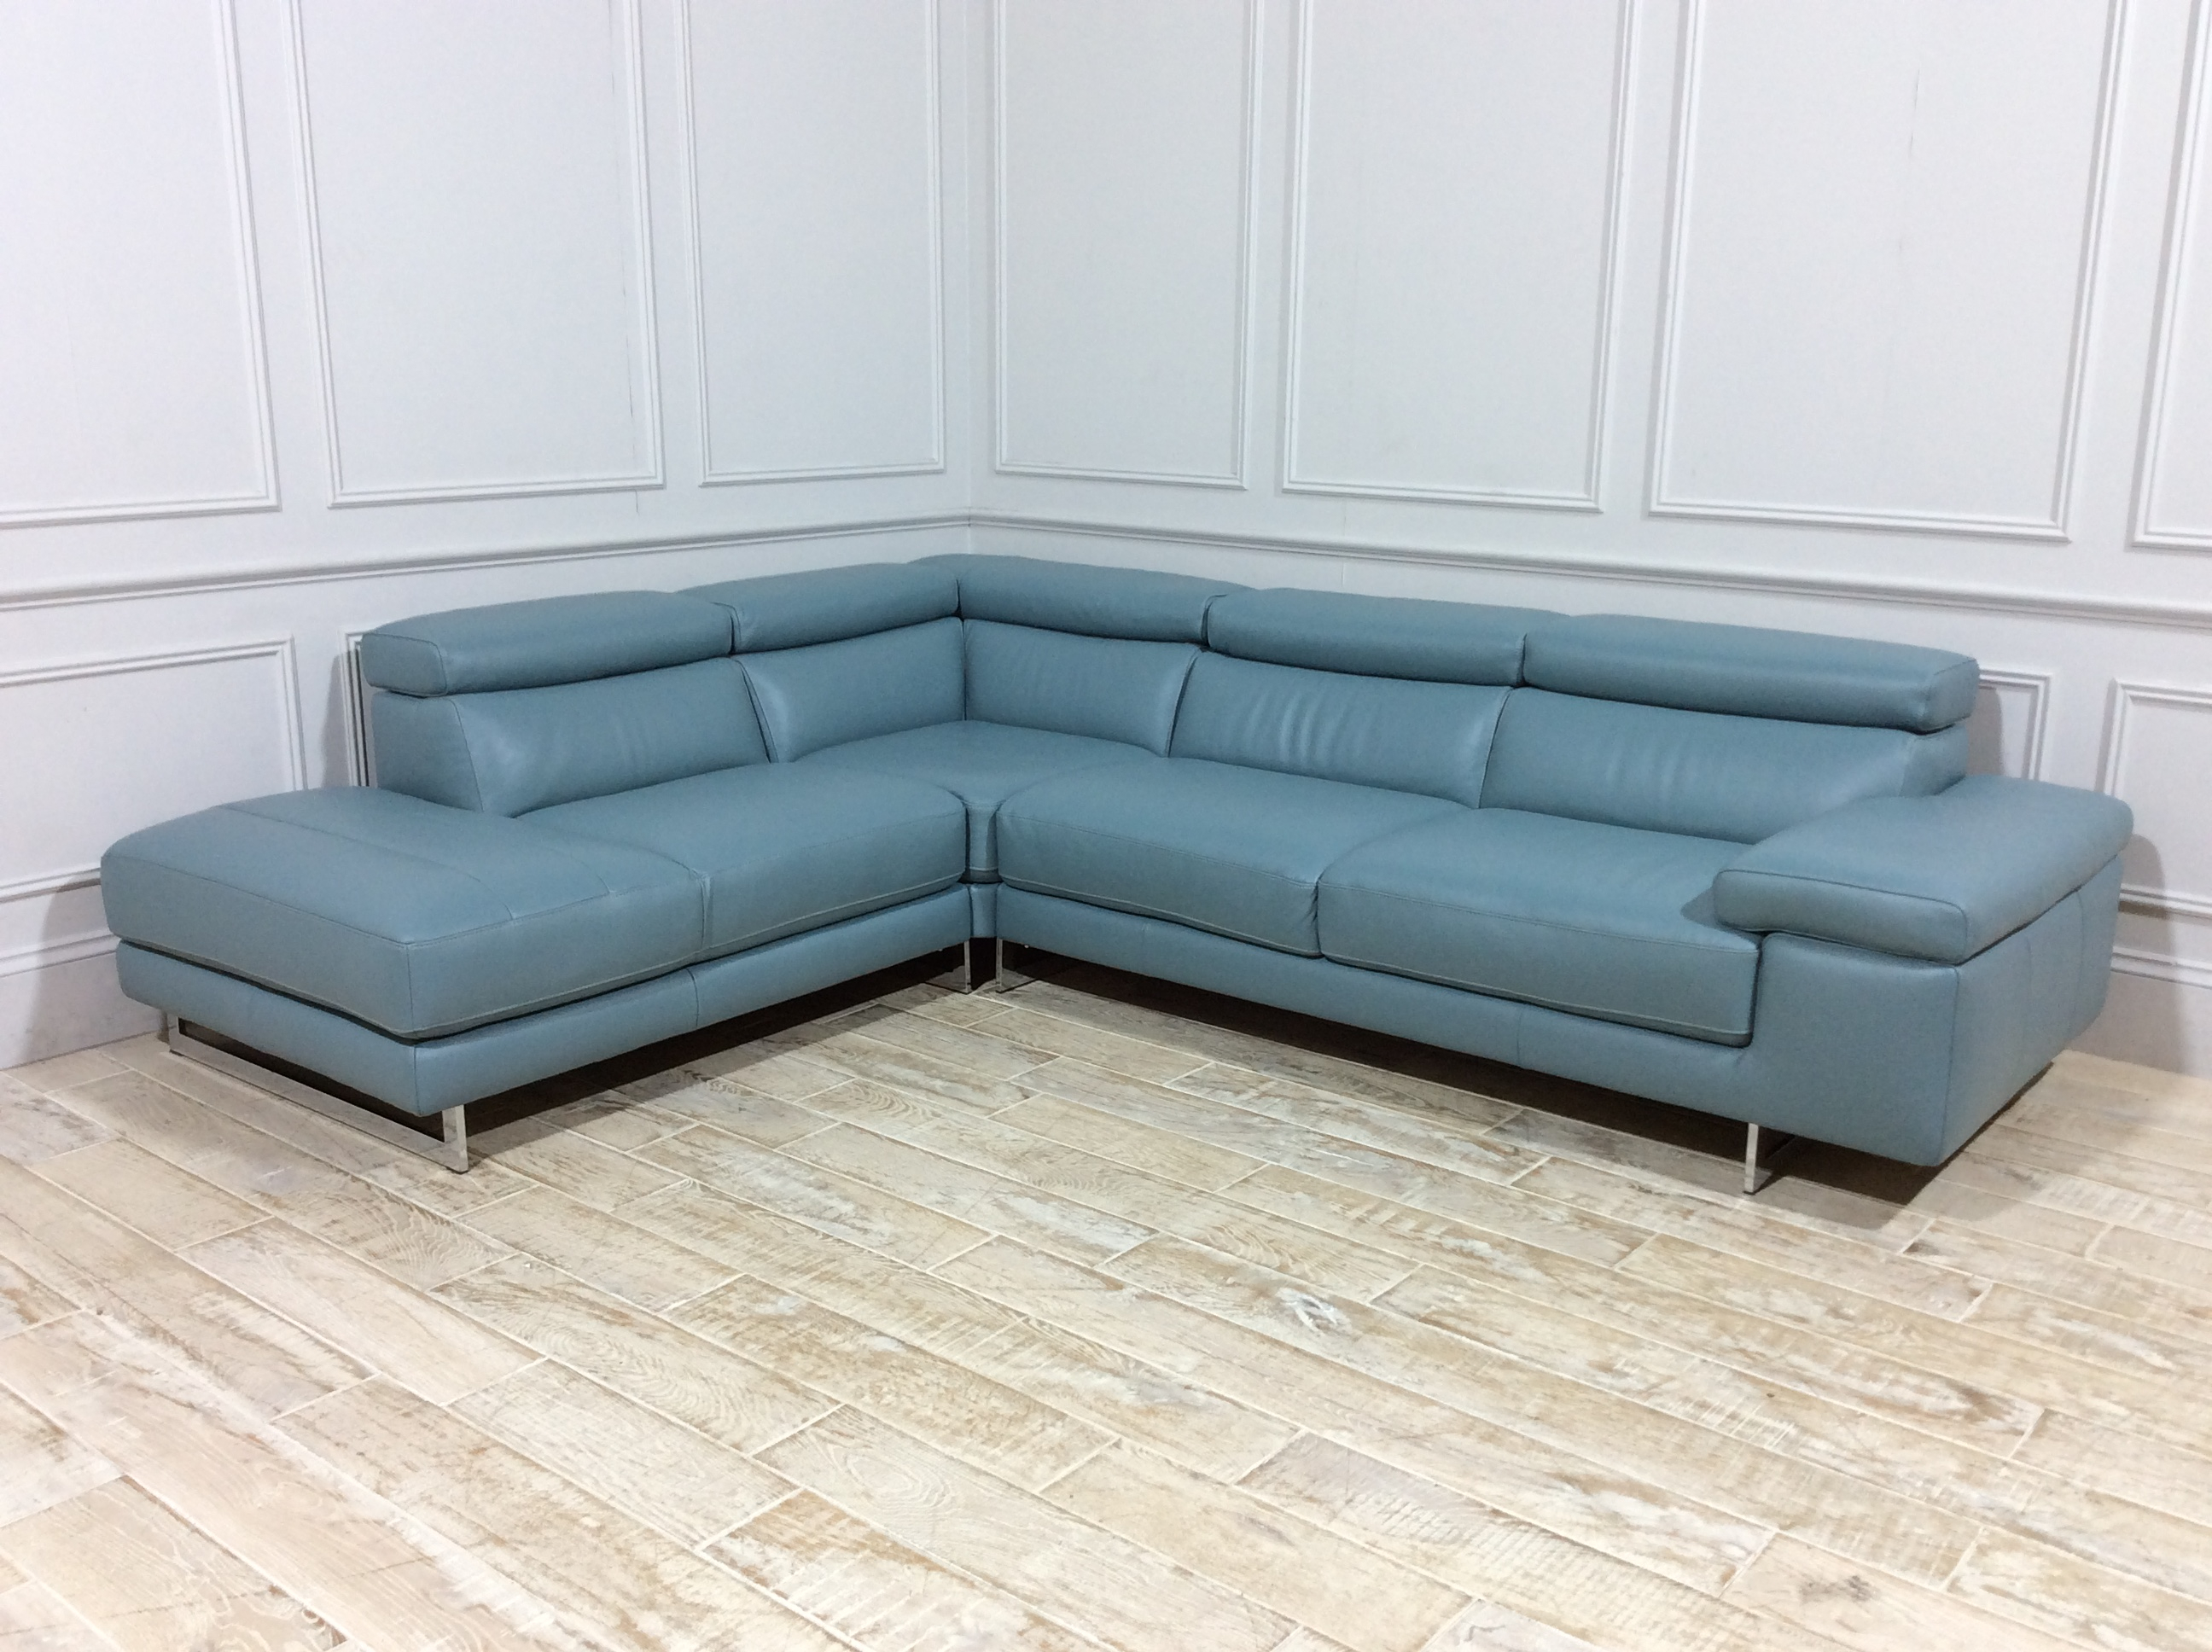 Milano Leather Chaise Leather Sofa in 20JX